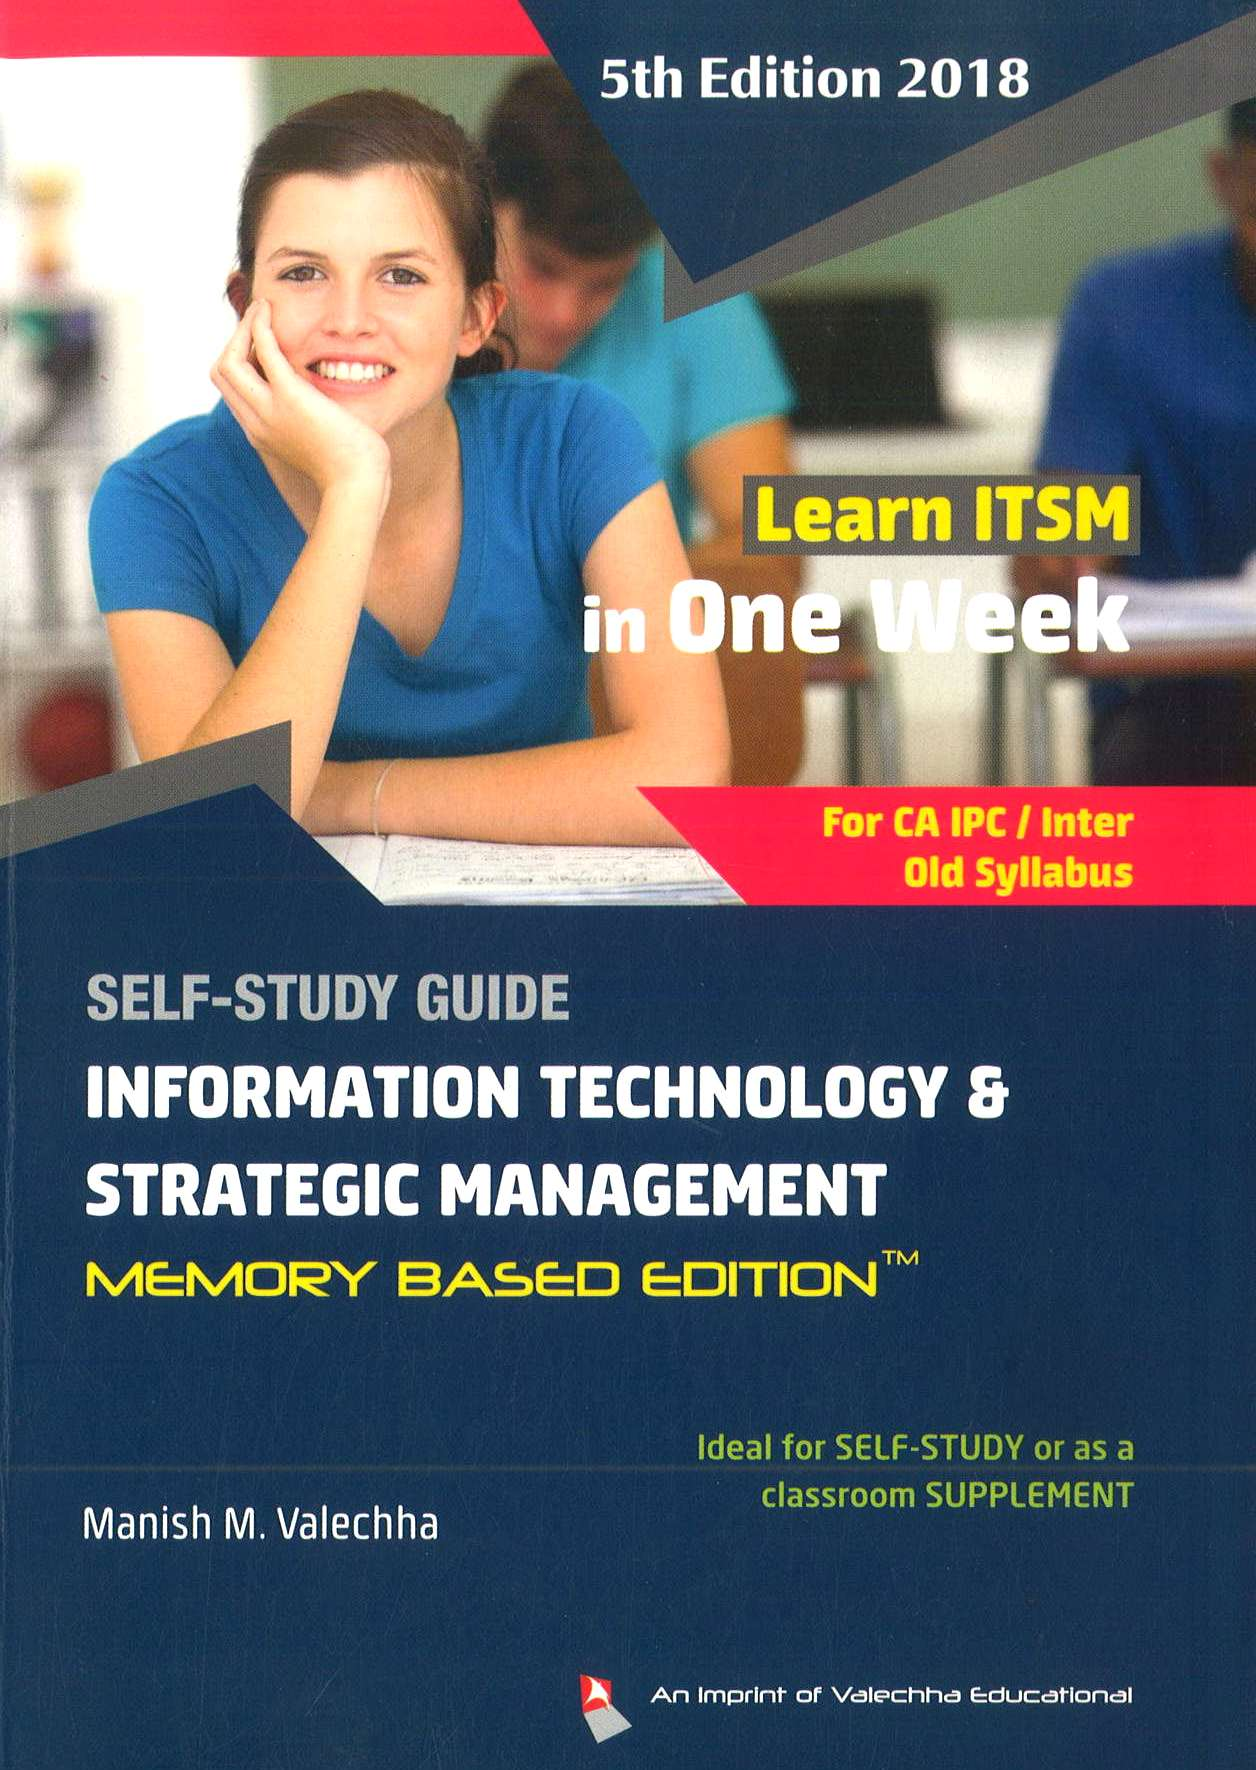 Valechha Educational Self Study Guide on Information Technology and Strategic Management (Memory Based Edition) for CA IPC/Intermediate by Manish M. Valechha (Valechha Educational Publishing) Edition 2018